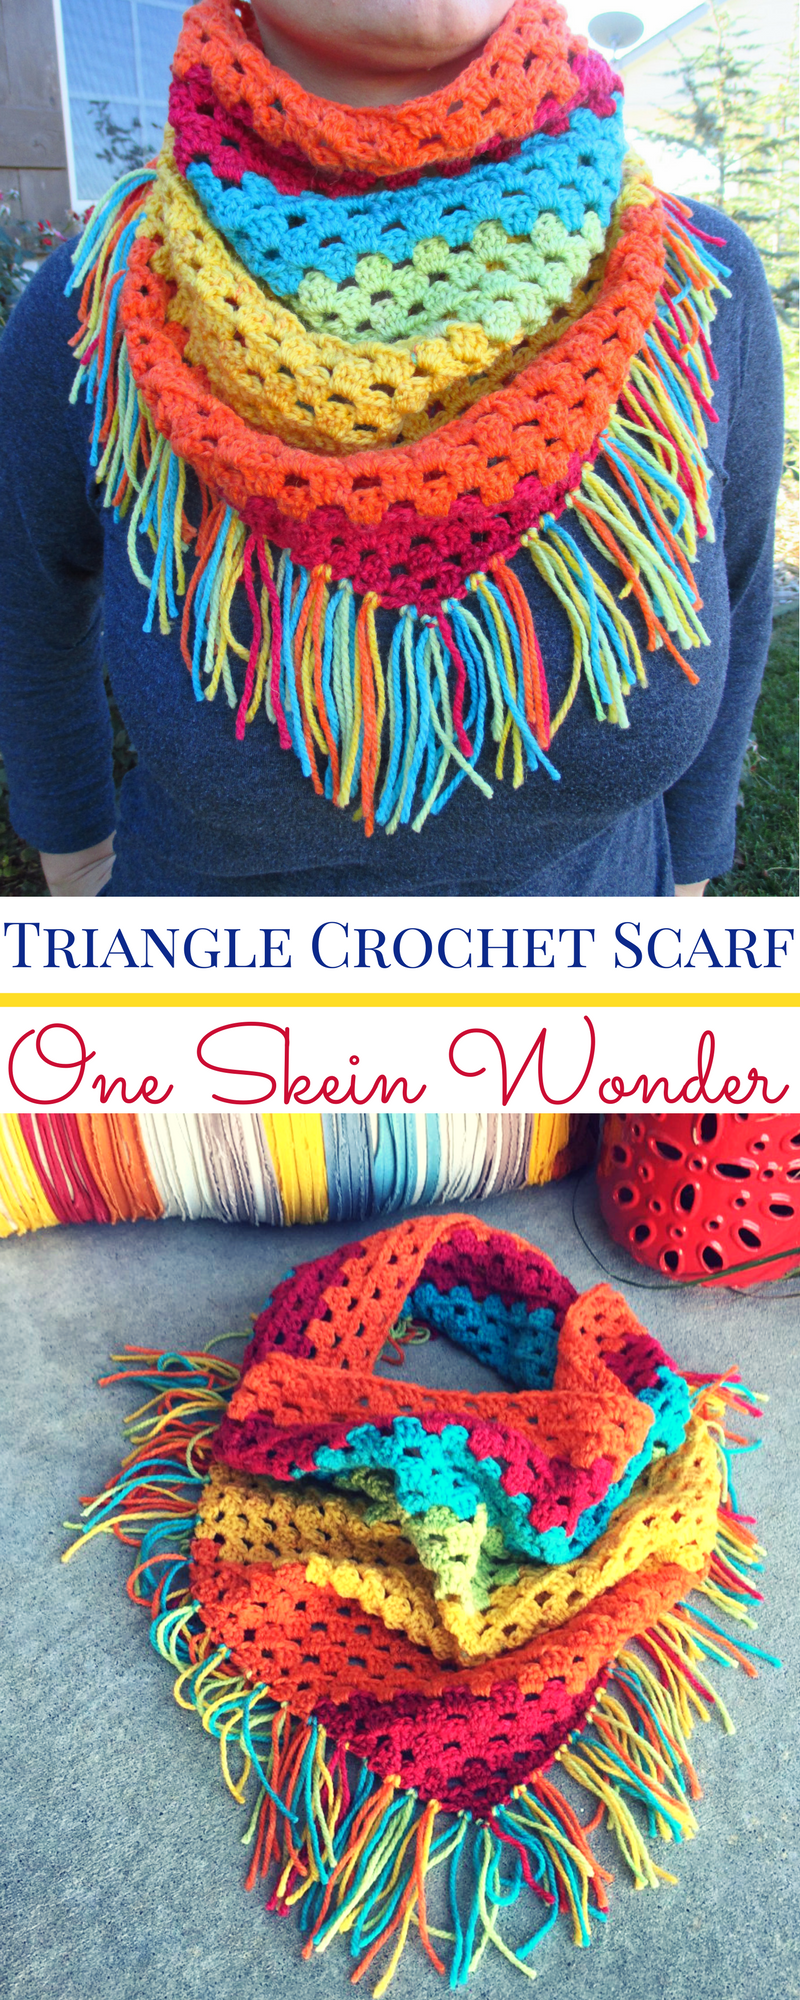 Triangle Crochet Scarf with Fringe (Using Caron Cake Yarn ...